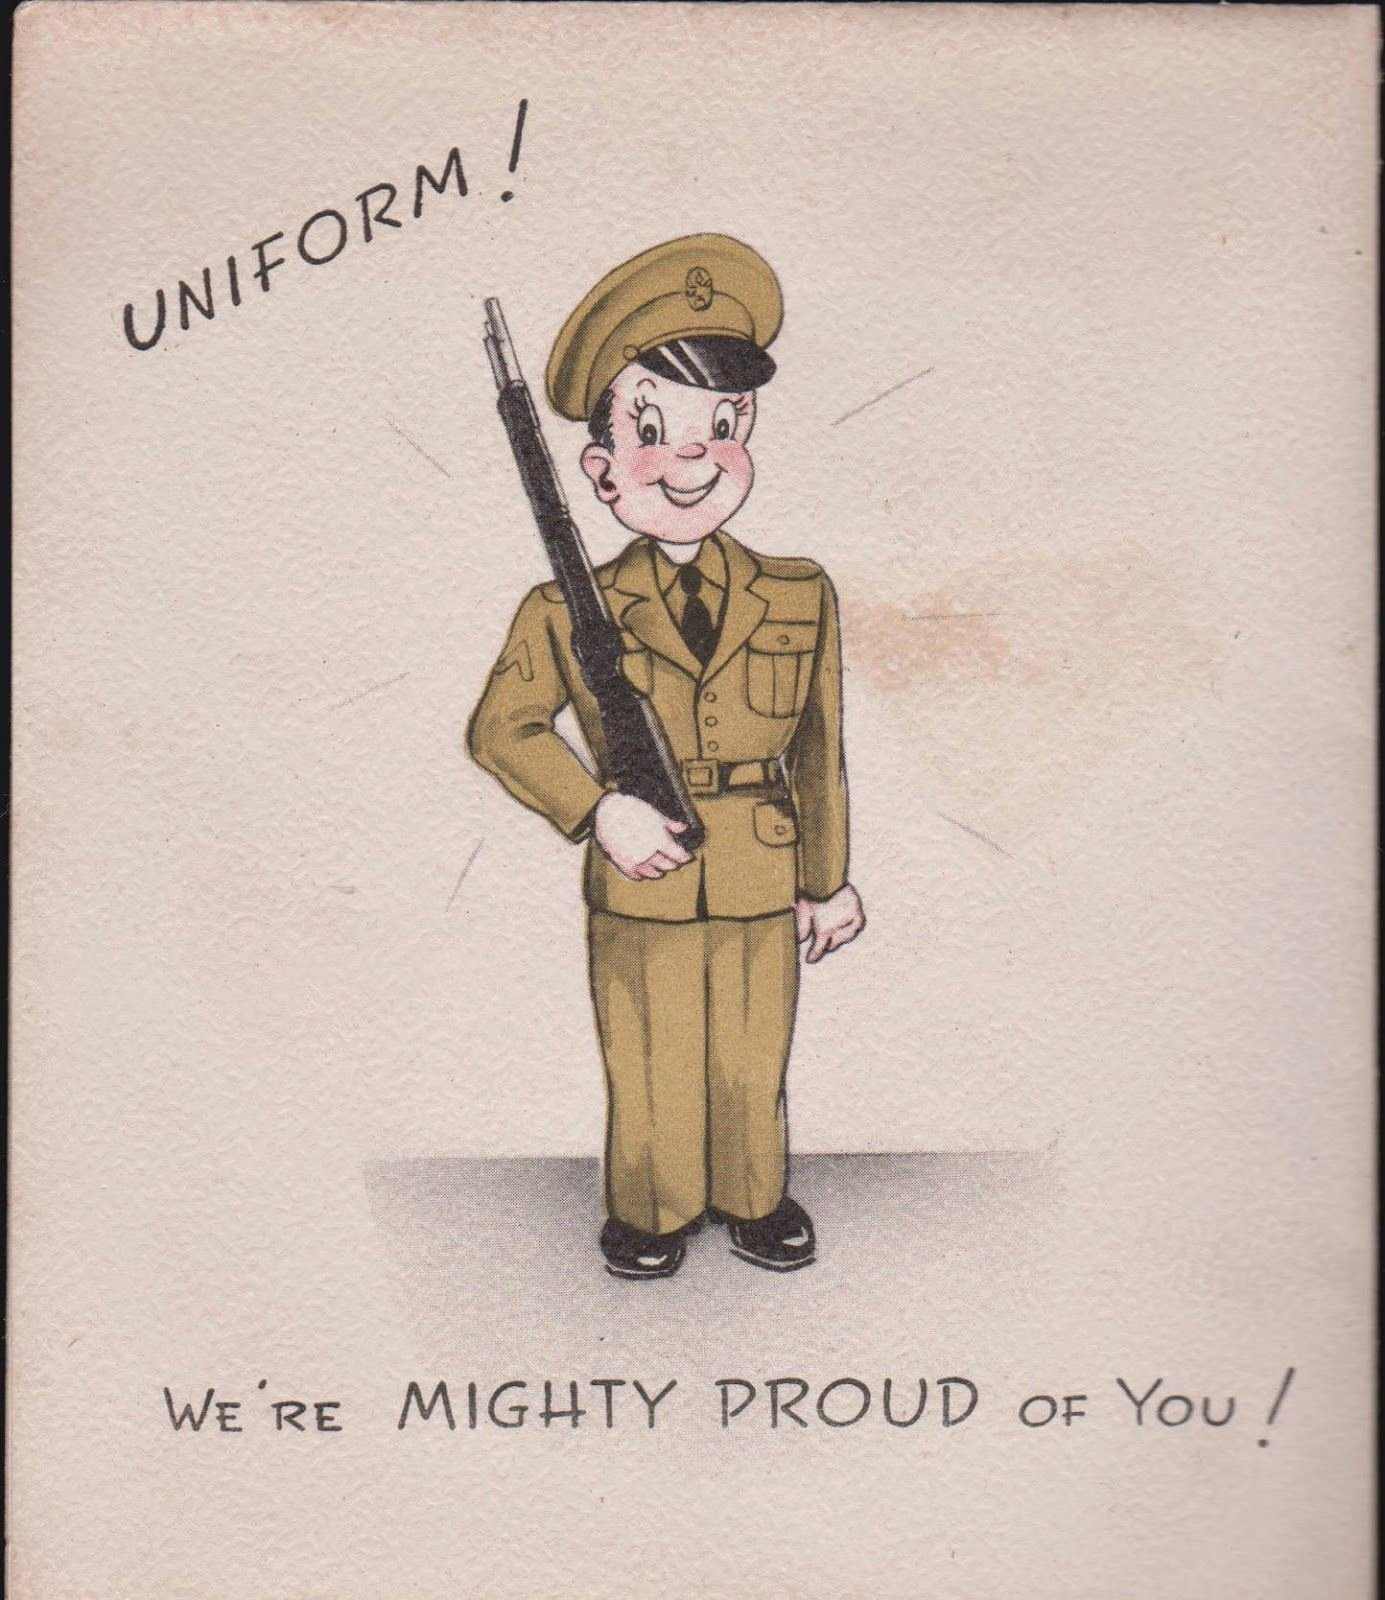 Free Printable Military Greeting Cards Luxury Vintage Recycling 1940s Wwii Greeting Cards for sol Rs